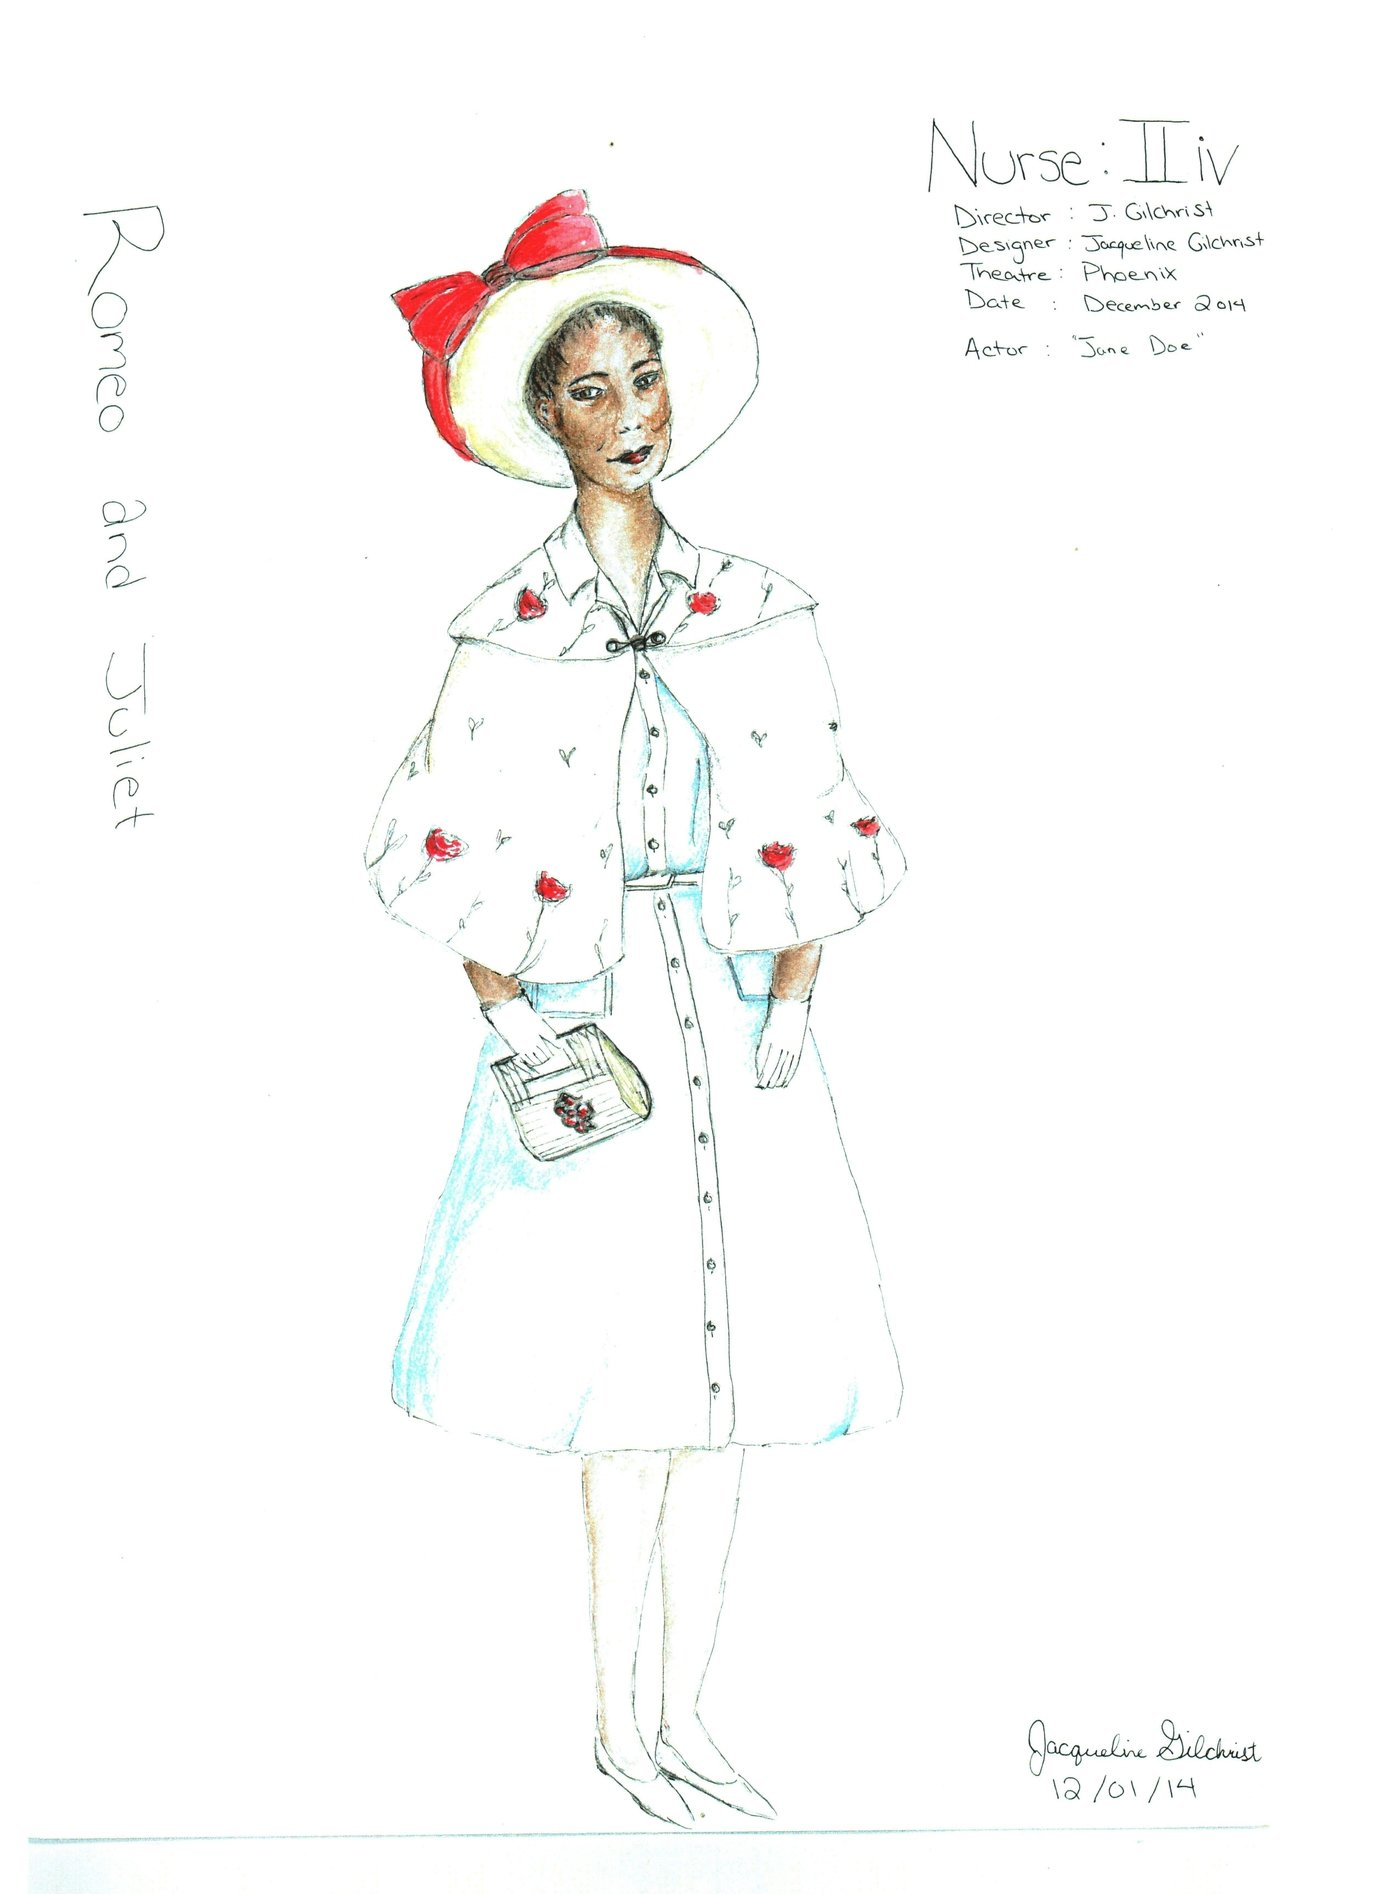 Romeo And Juliet Costume Designs By Jacqueline Gilchrist At Coroflot Com